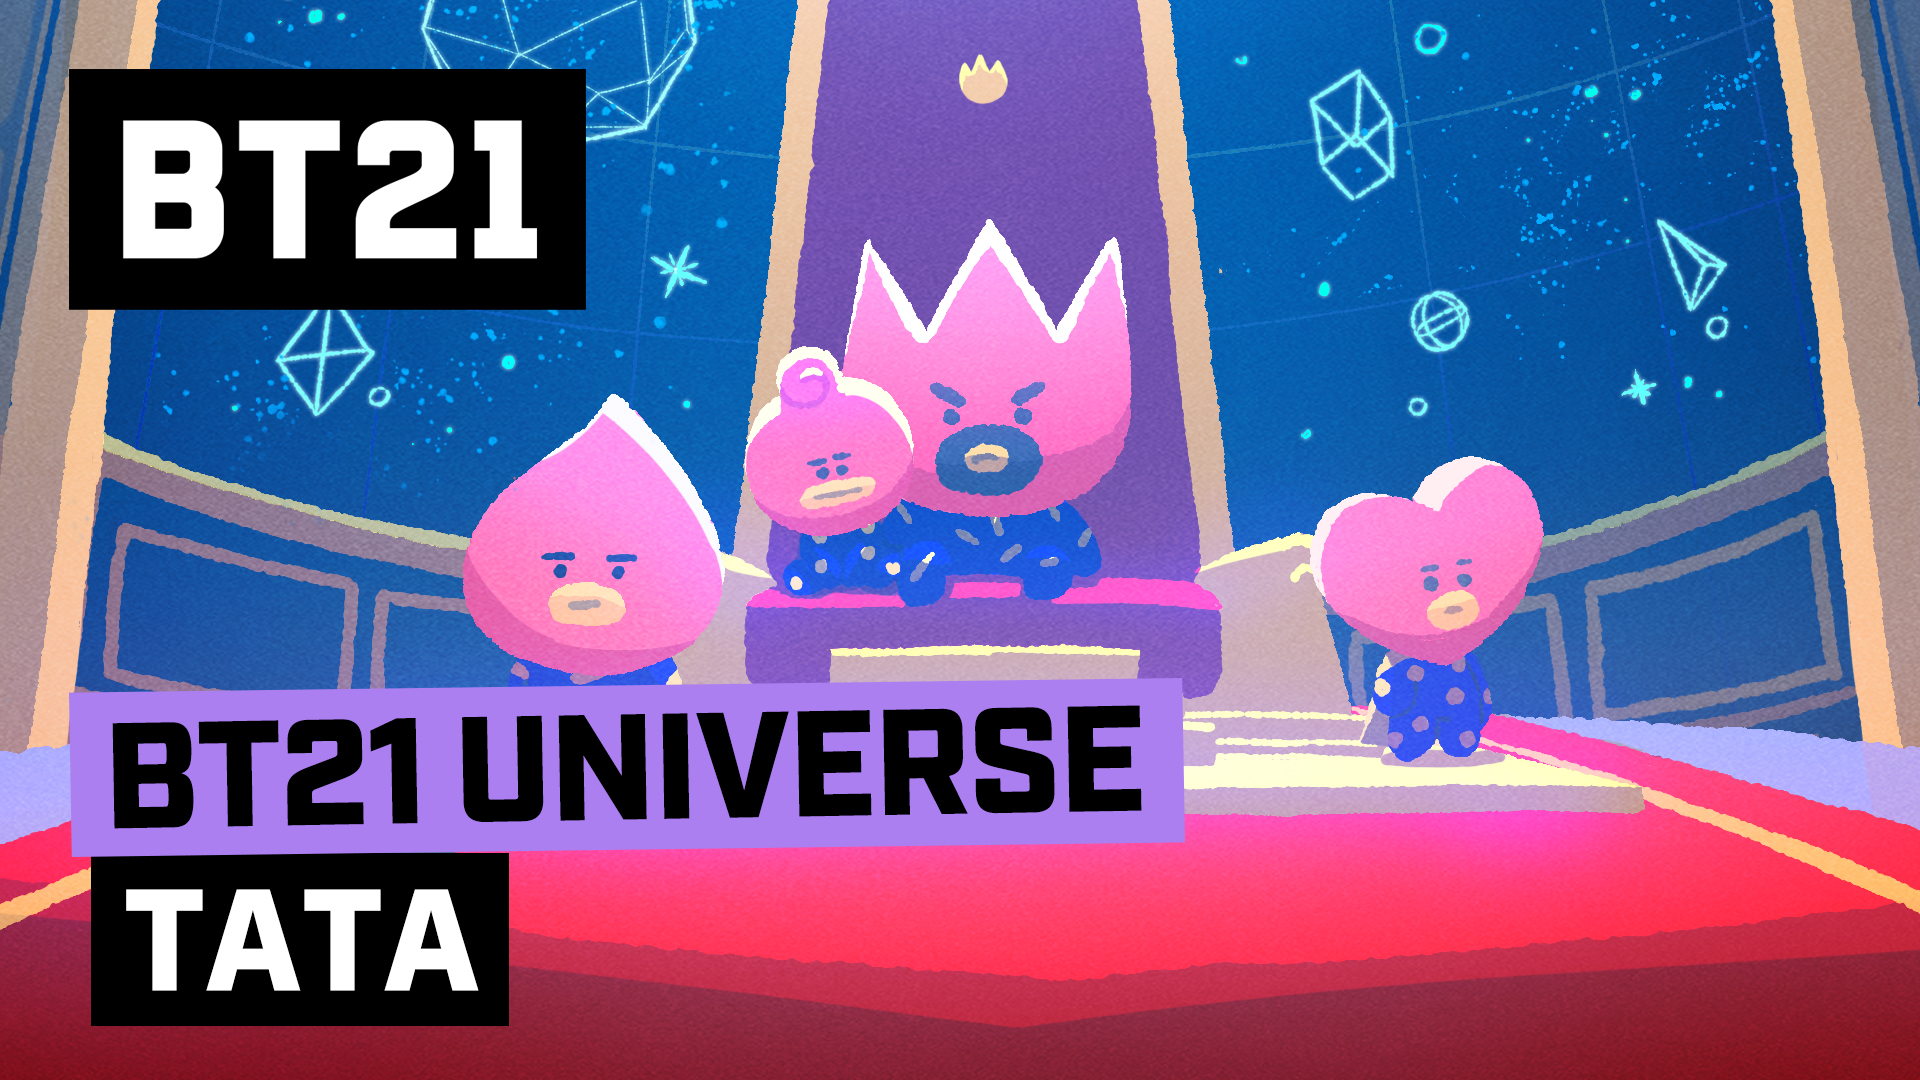 [BT21] BT21 UNIVERSE ANIMATION EP.02 - TATA